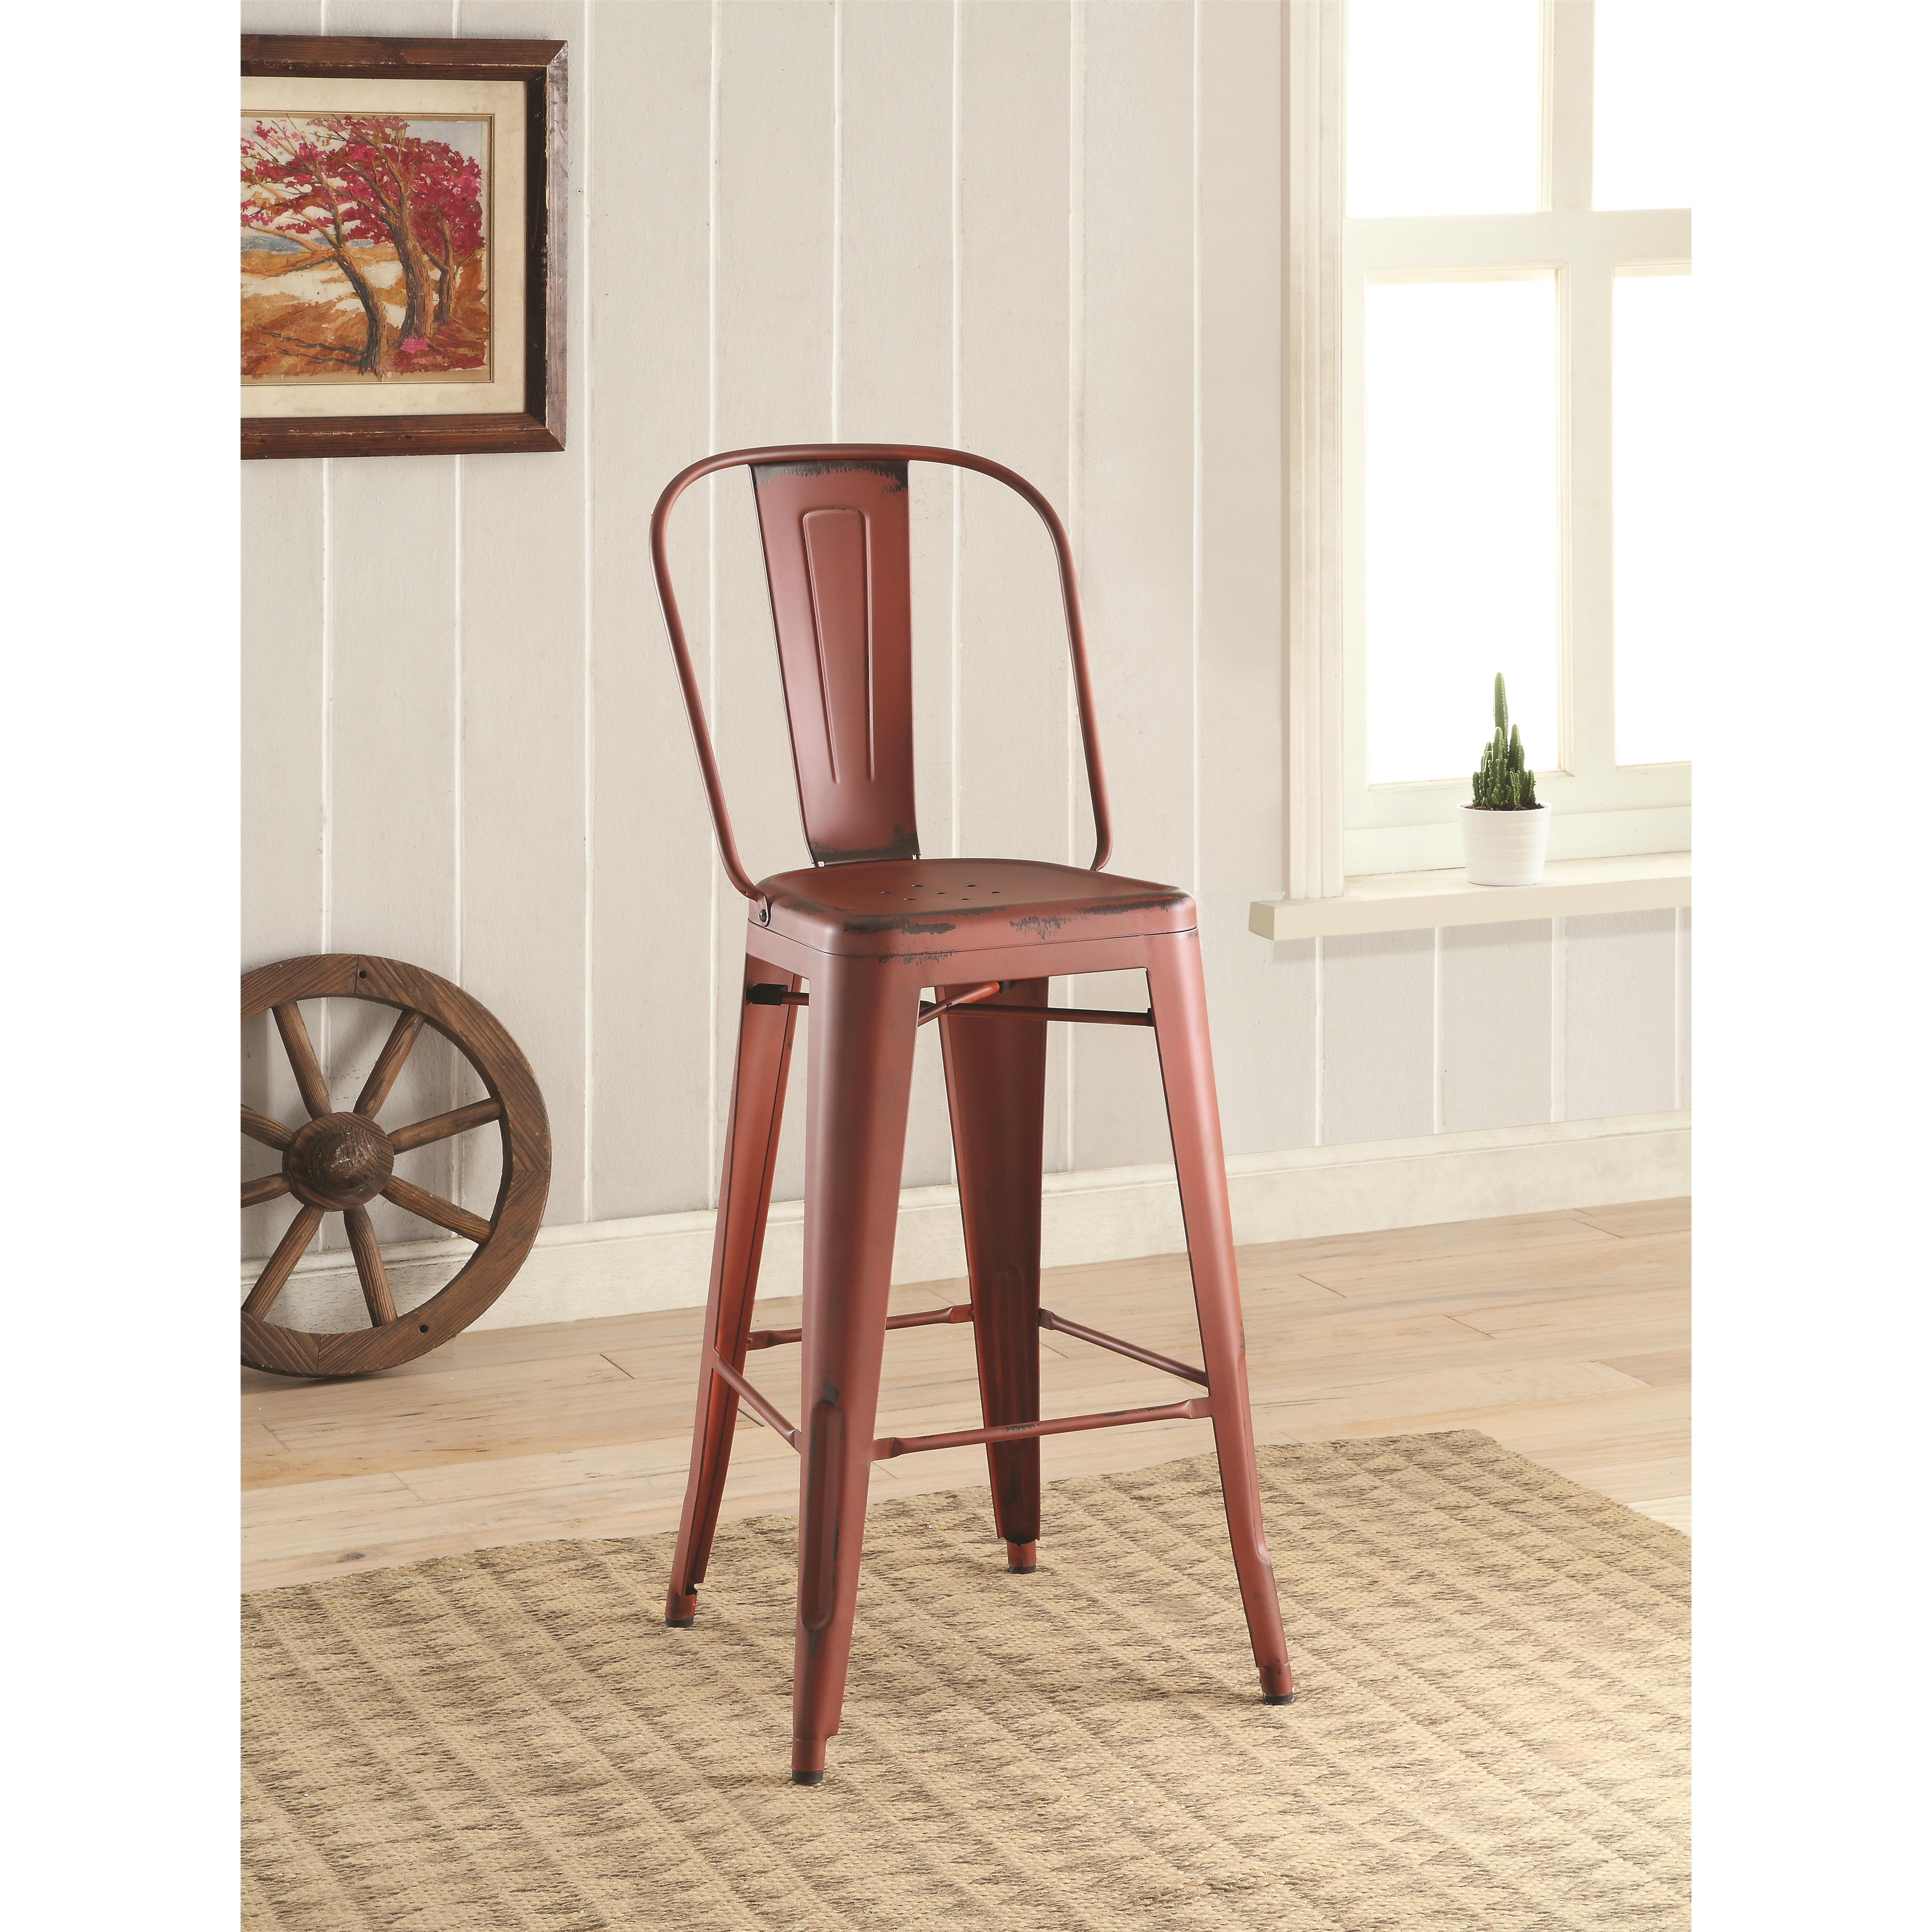 Picture of: 2pcs Contemporary Style Red Bar Stool Shop For Affordable Home Furniture Decor Outdoors And More